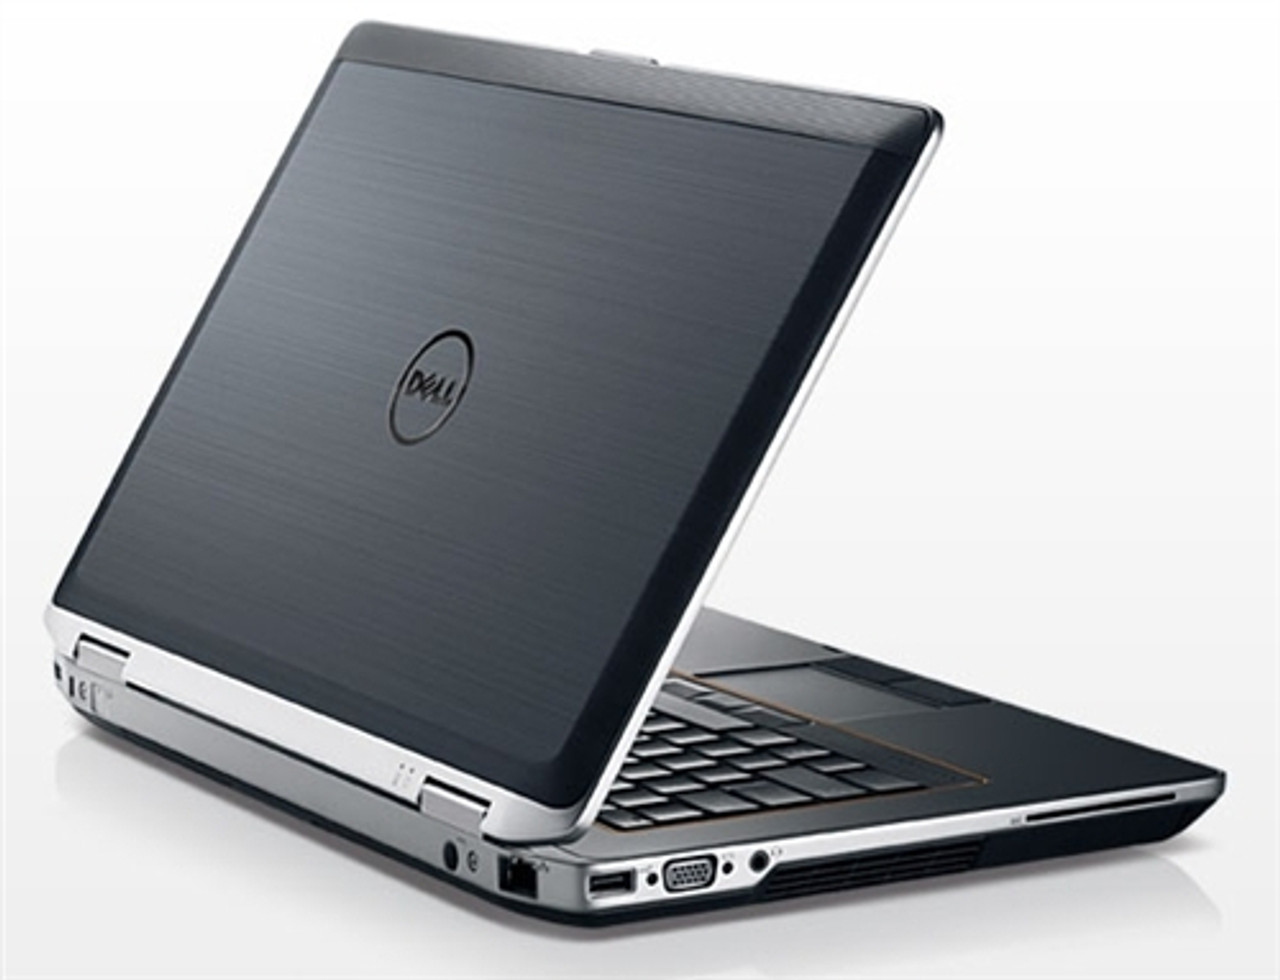 Dell Latitude E6420 Laptop Core i5 2.5GHz, 4GB Ram, 250GB HDD, DVD-RW, Windows 10 Pro 64 Notebook